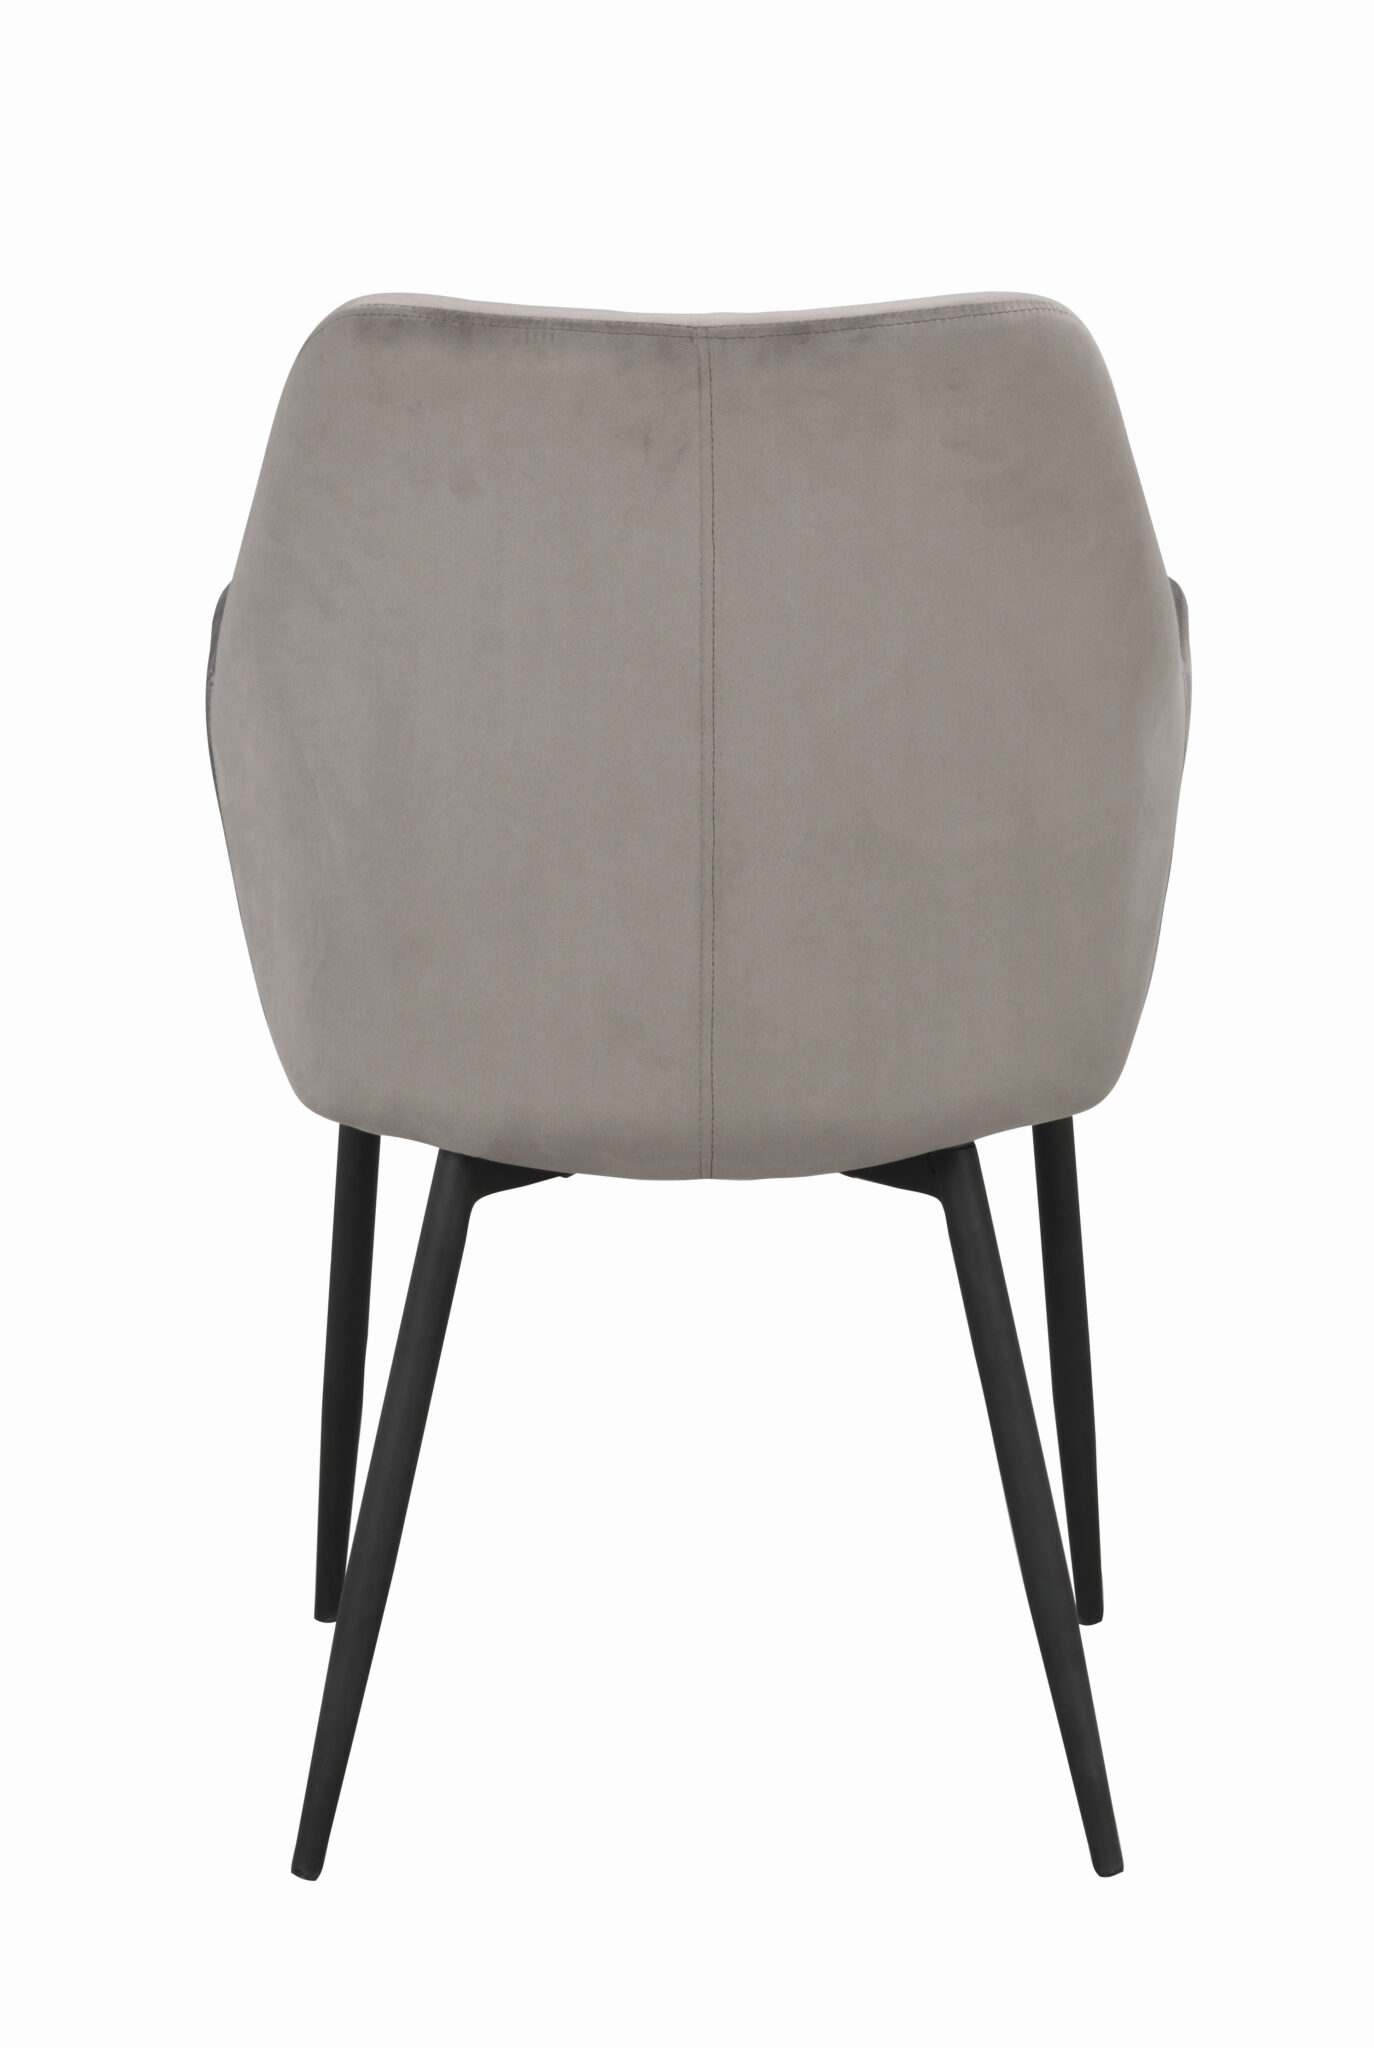 Ramsey arm chair Grey_black 110456 4